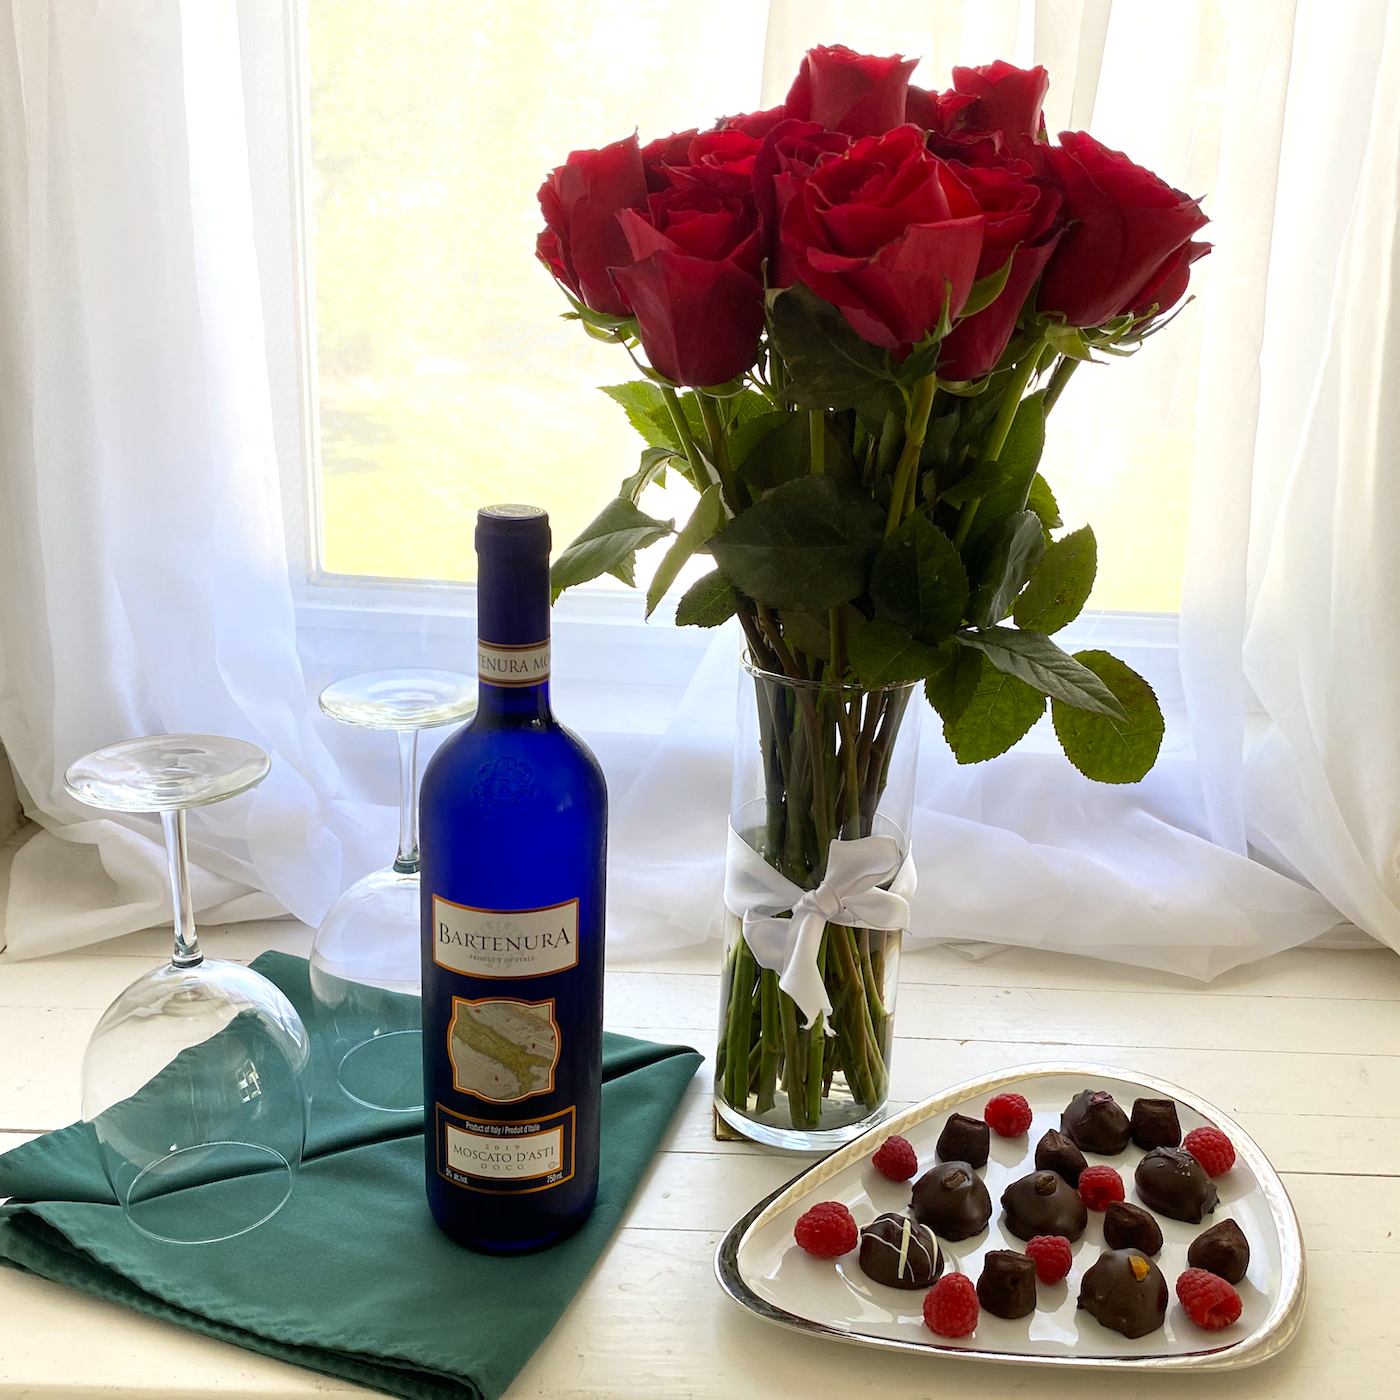 Wine, roses, and chocolate truffles to enhance the experience at our B&B.